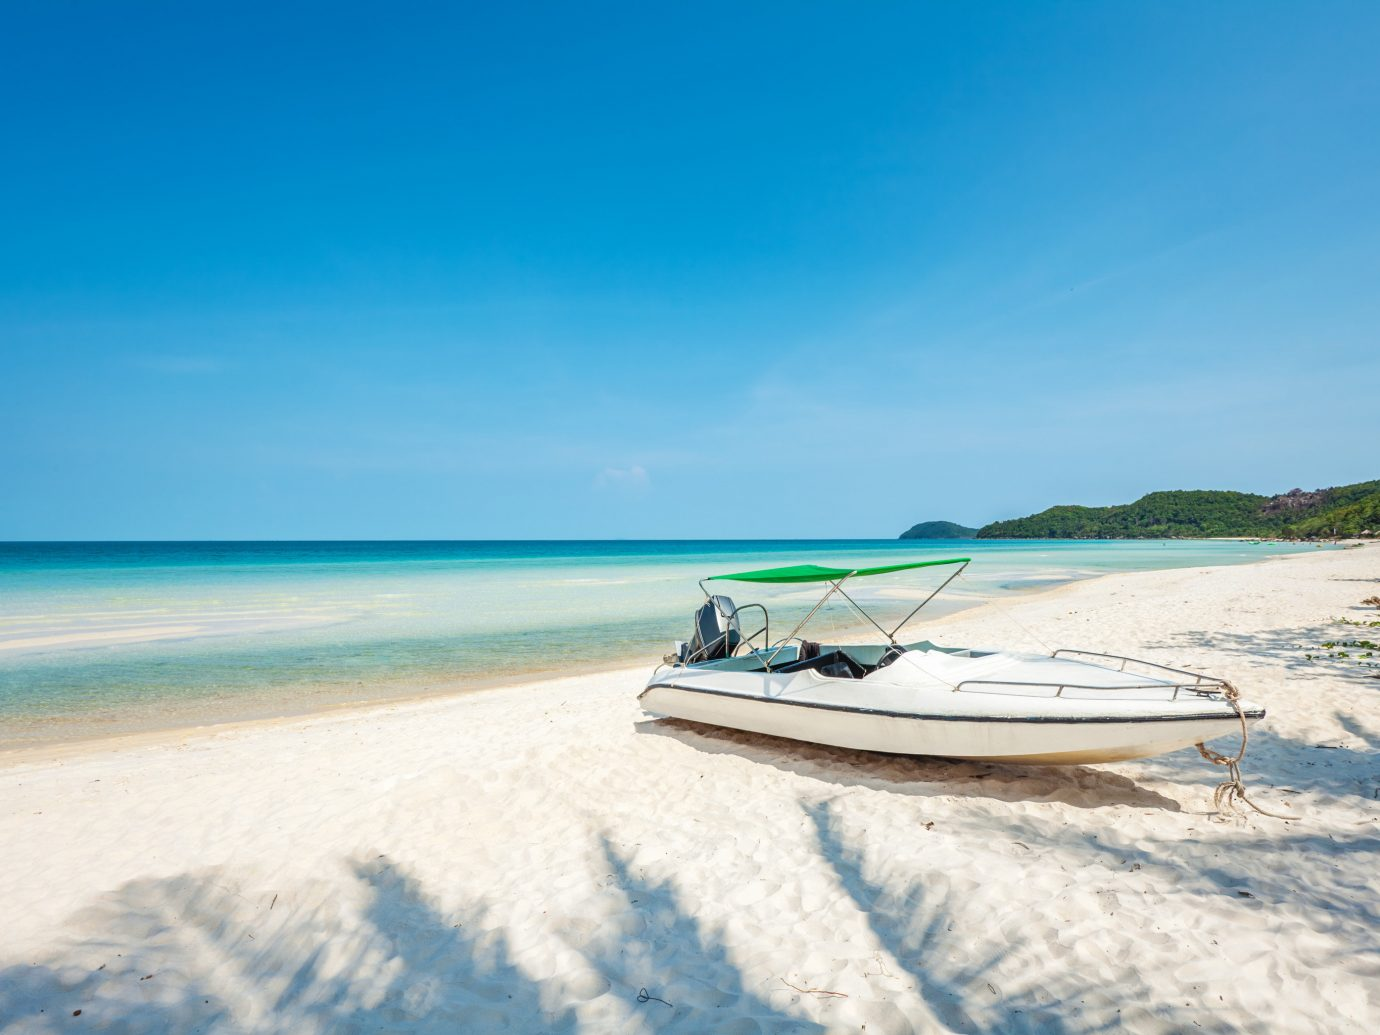 Solo Travel Trip Ideas sky outdoor water Beach Nature Boat shore Sea vehicle Ocean vacation boating caribbean Coast bay sand watercraft surfing equipment and supplies Island wave surfboard Lagoon sandy day